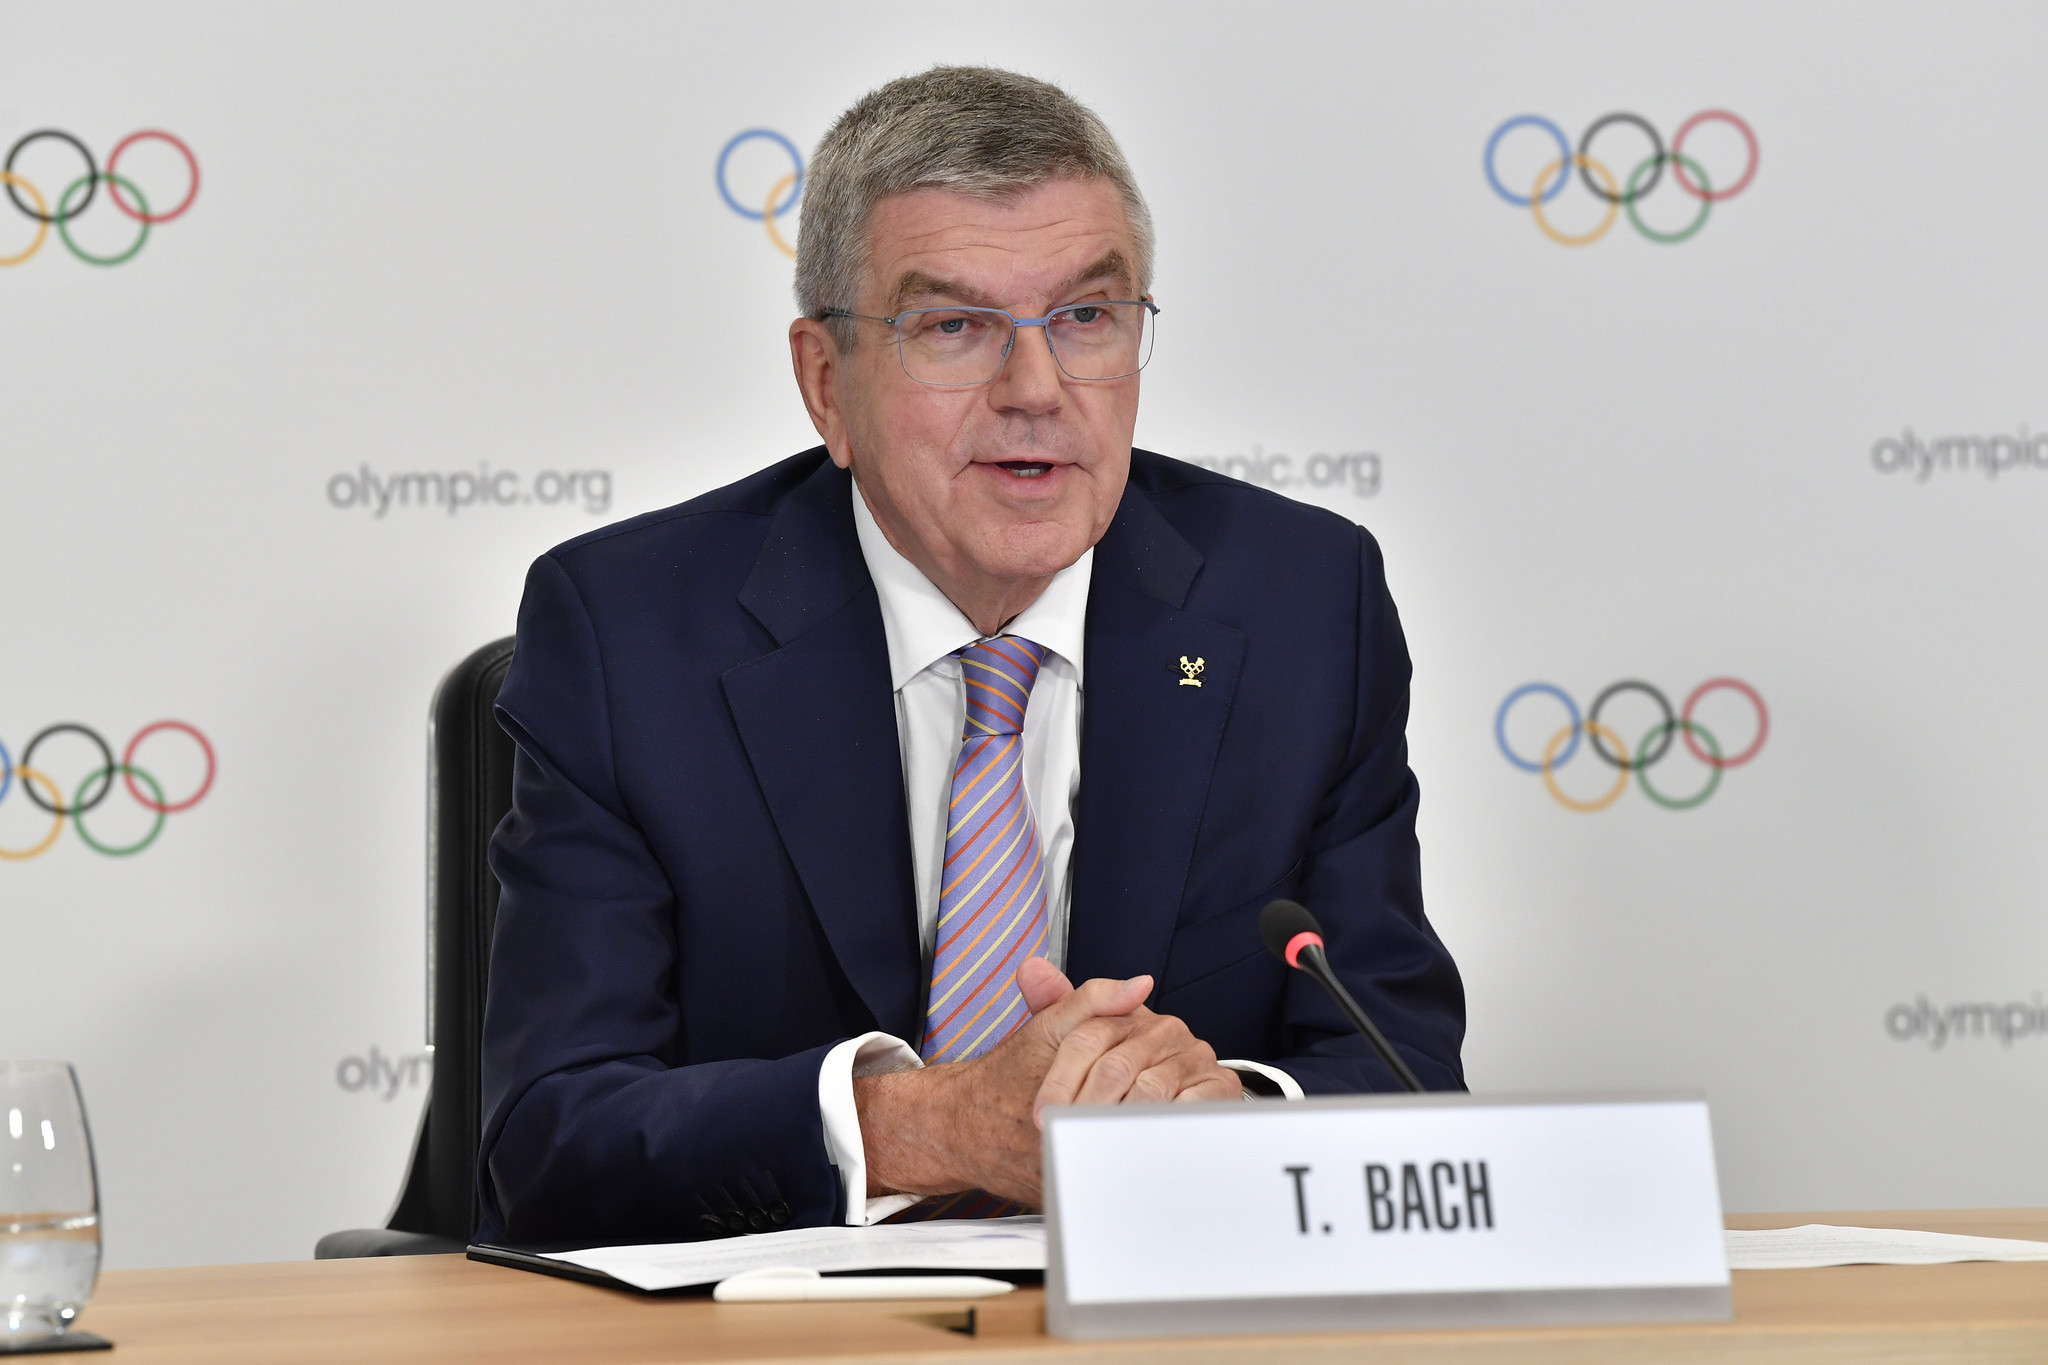 IOC President Thomas Bach said the allegations against Belarus were very concerning ©Getty Images